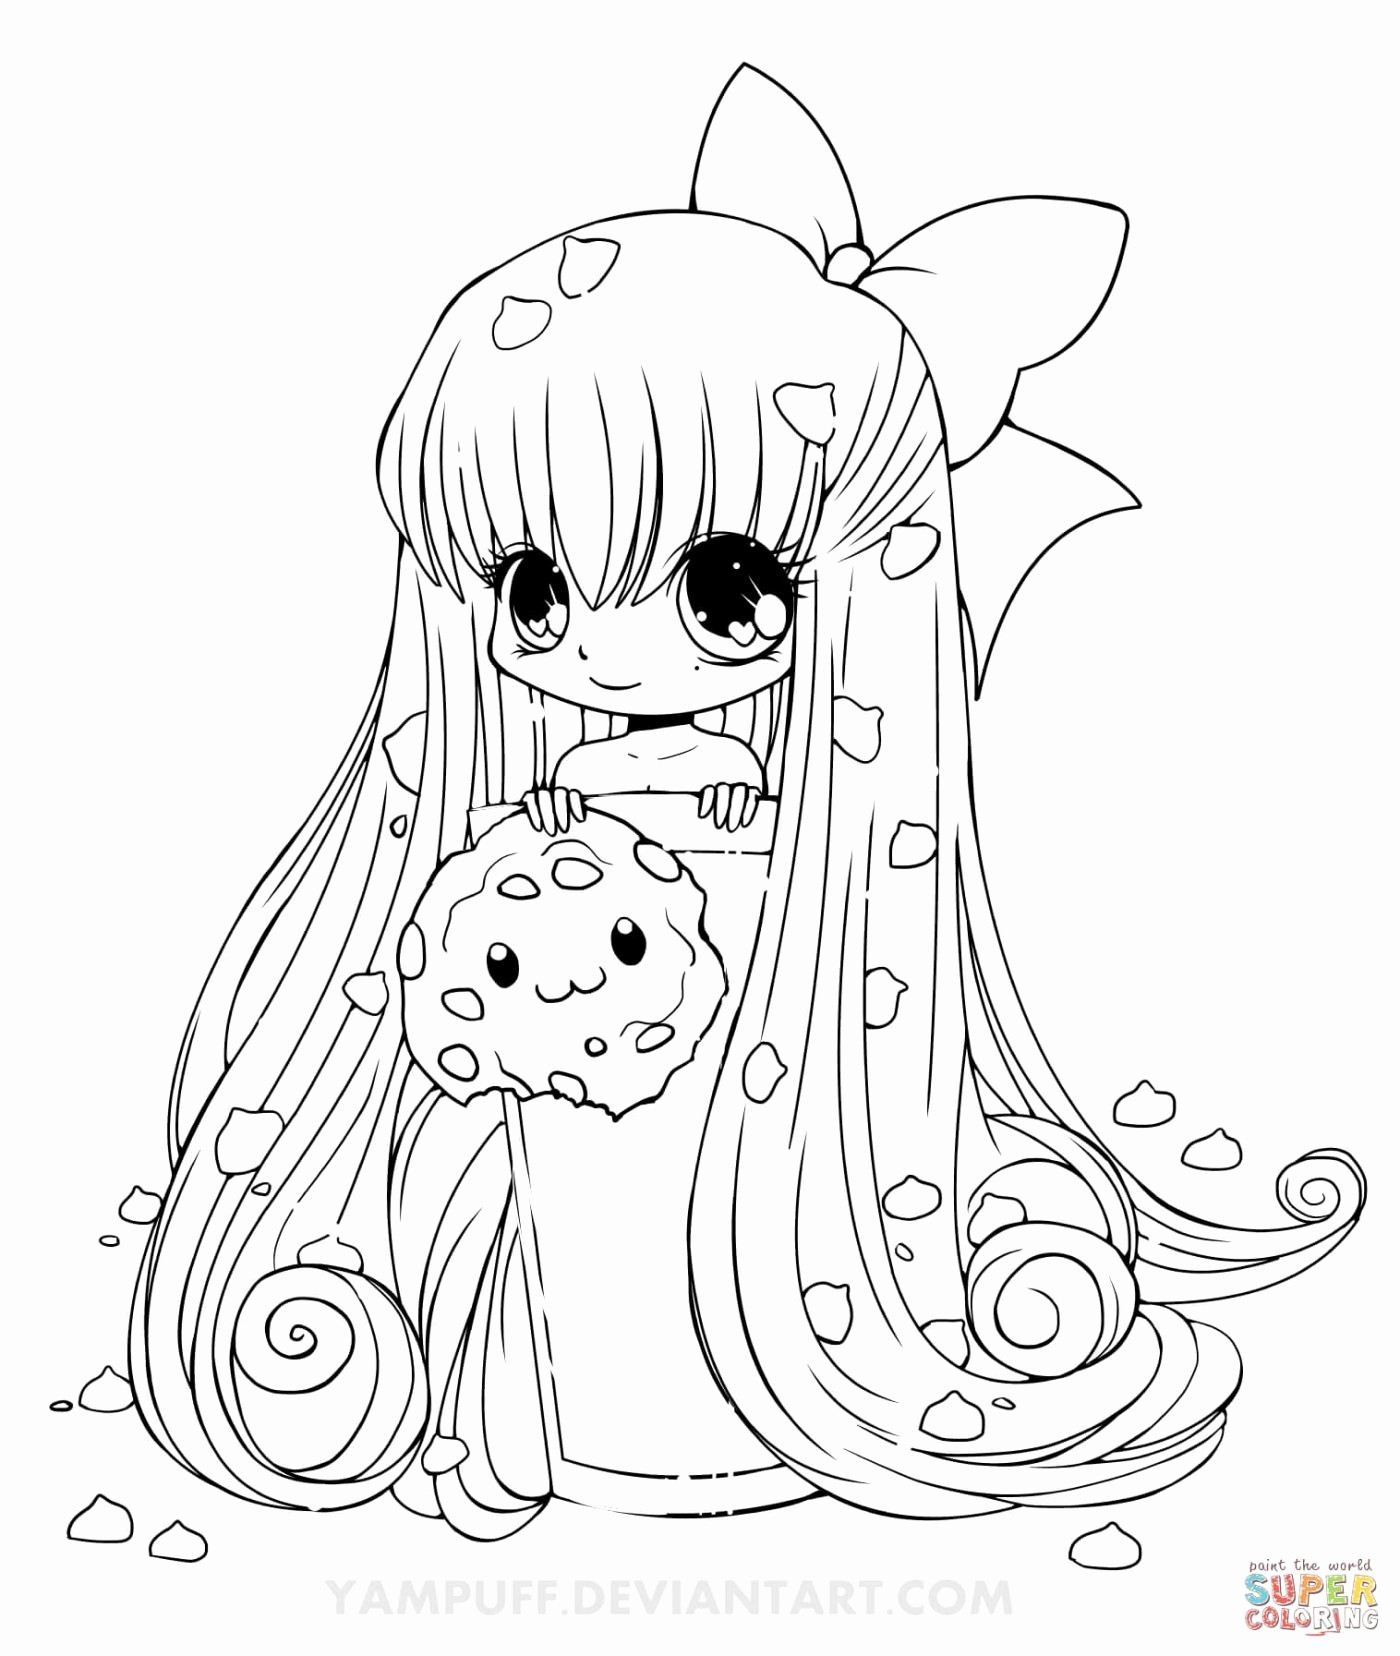 cute kawaii chibi coloring pages free printable chibi coloring pages for kids pages kawaii chibi coloring cute